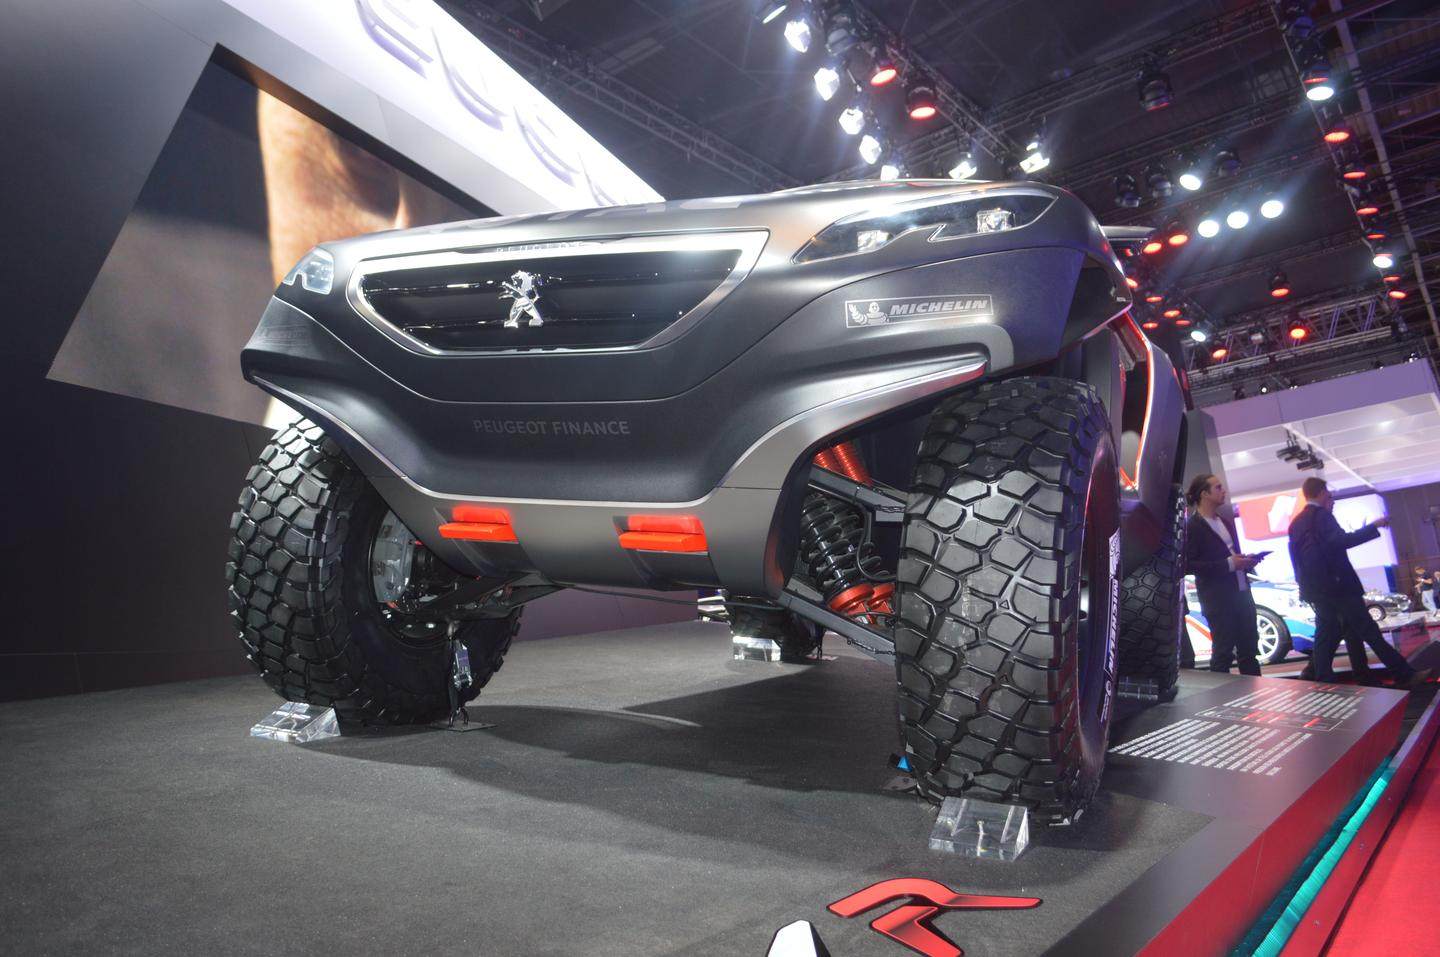 The Peugeot 2008 DKR will debut at Dakar in January (Photo: C.C. Weiss/Gizmag)